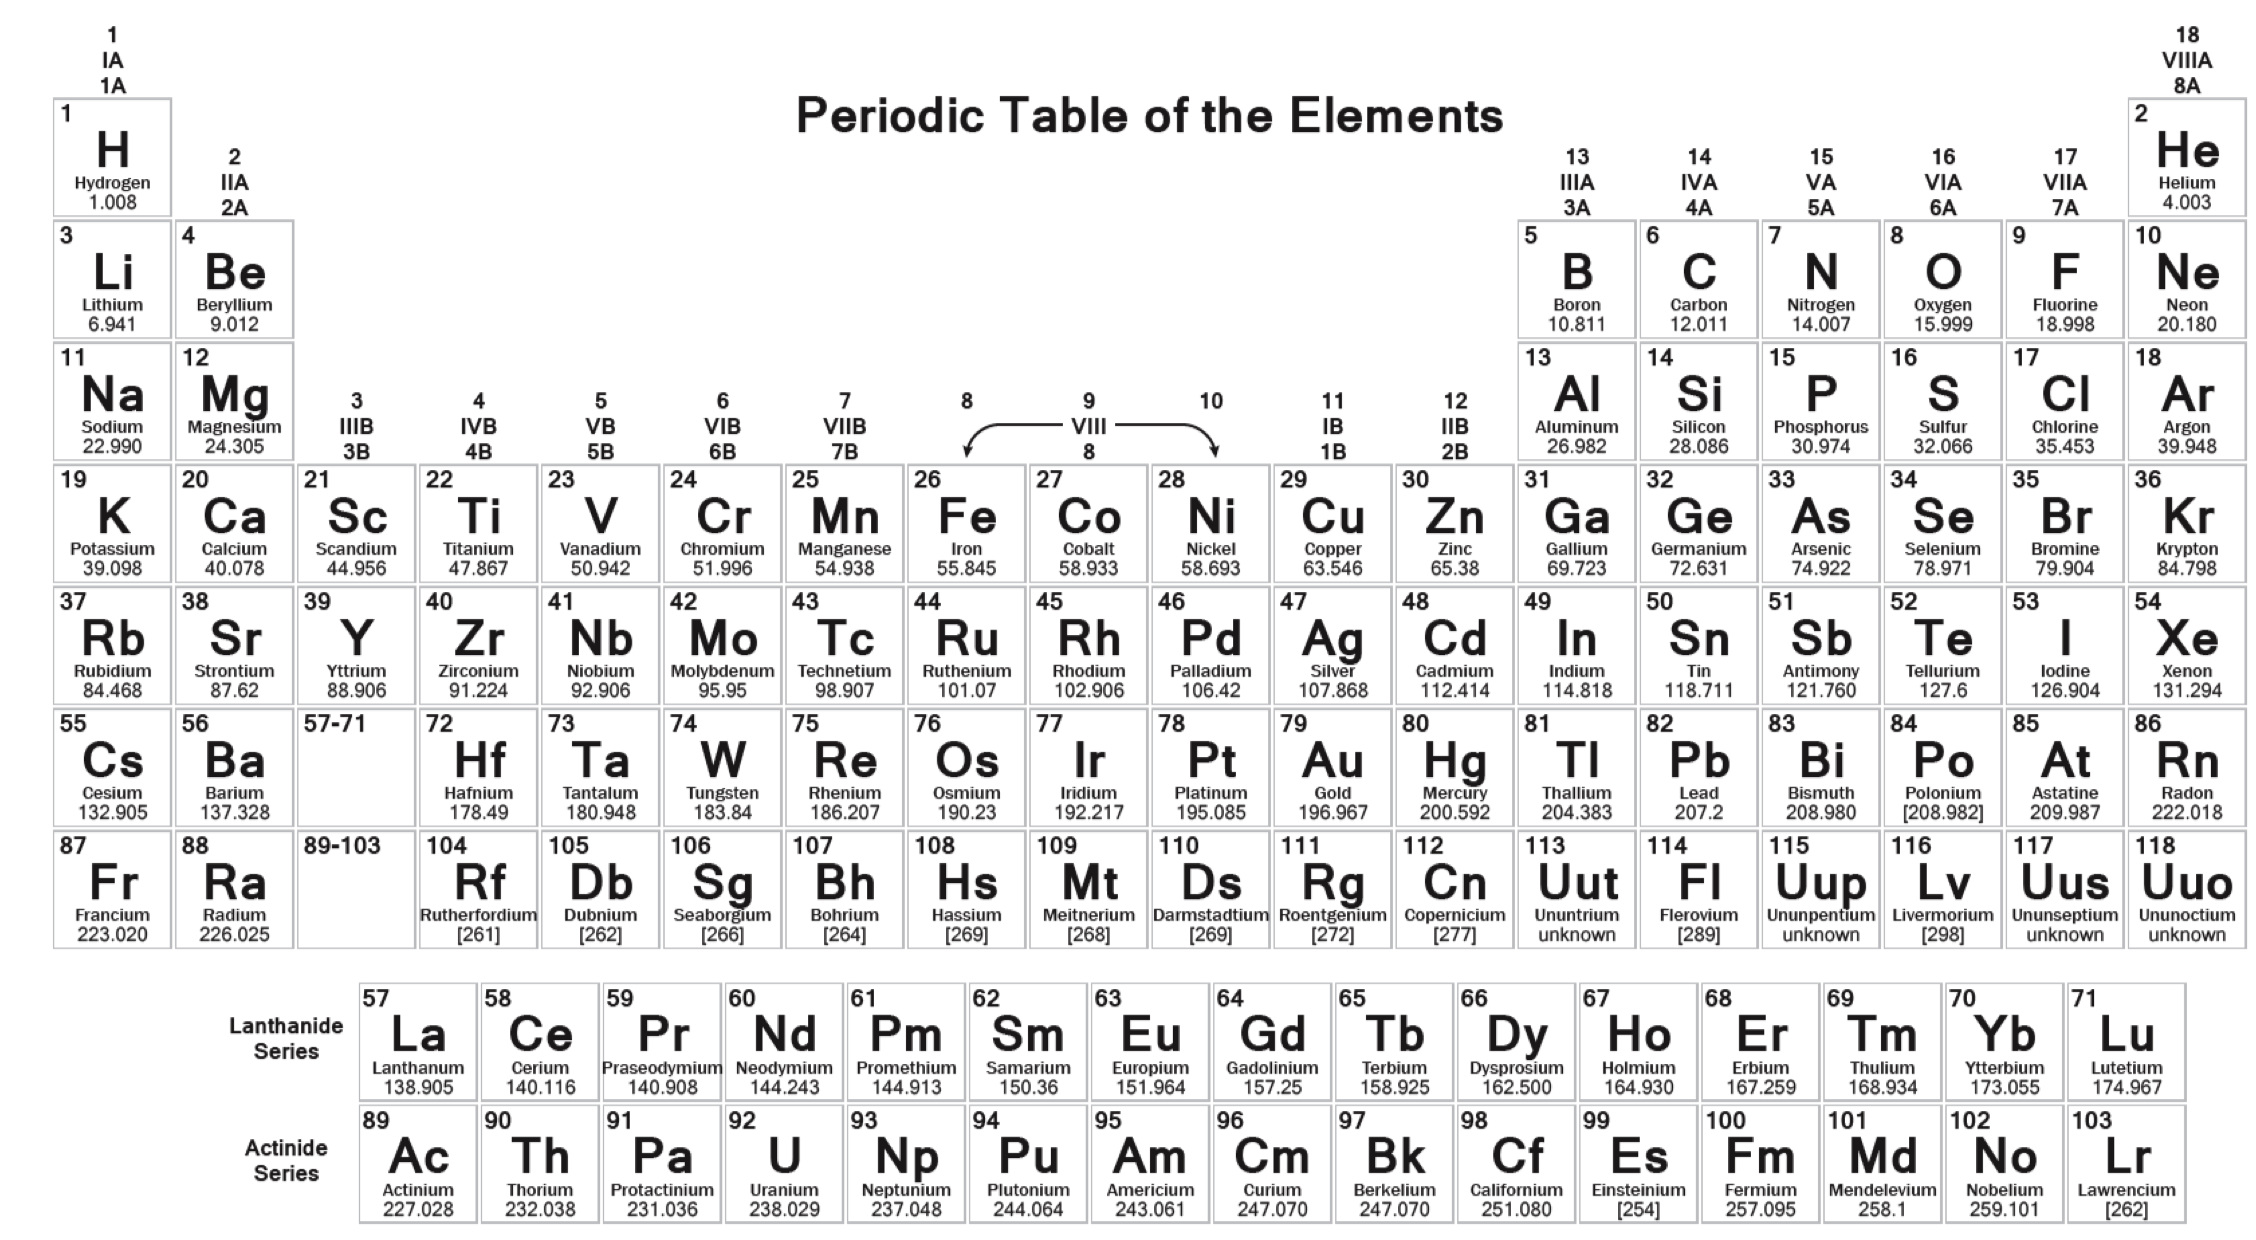 Figure 2 .  Periodic Table of Elements.